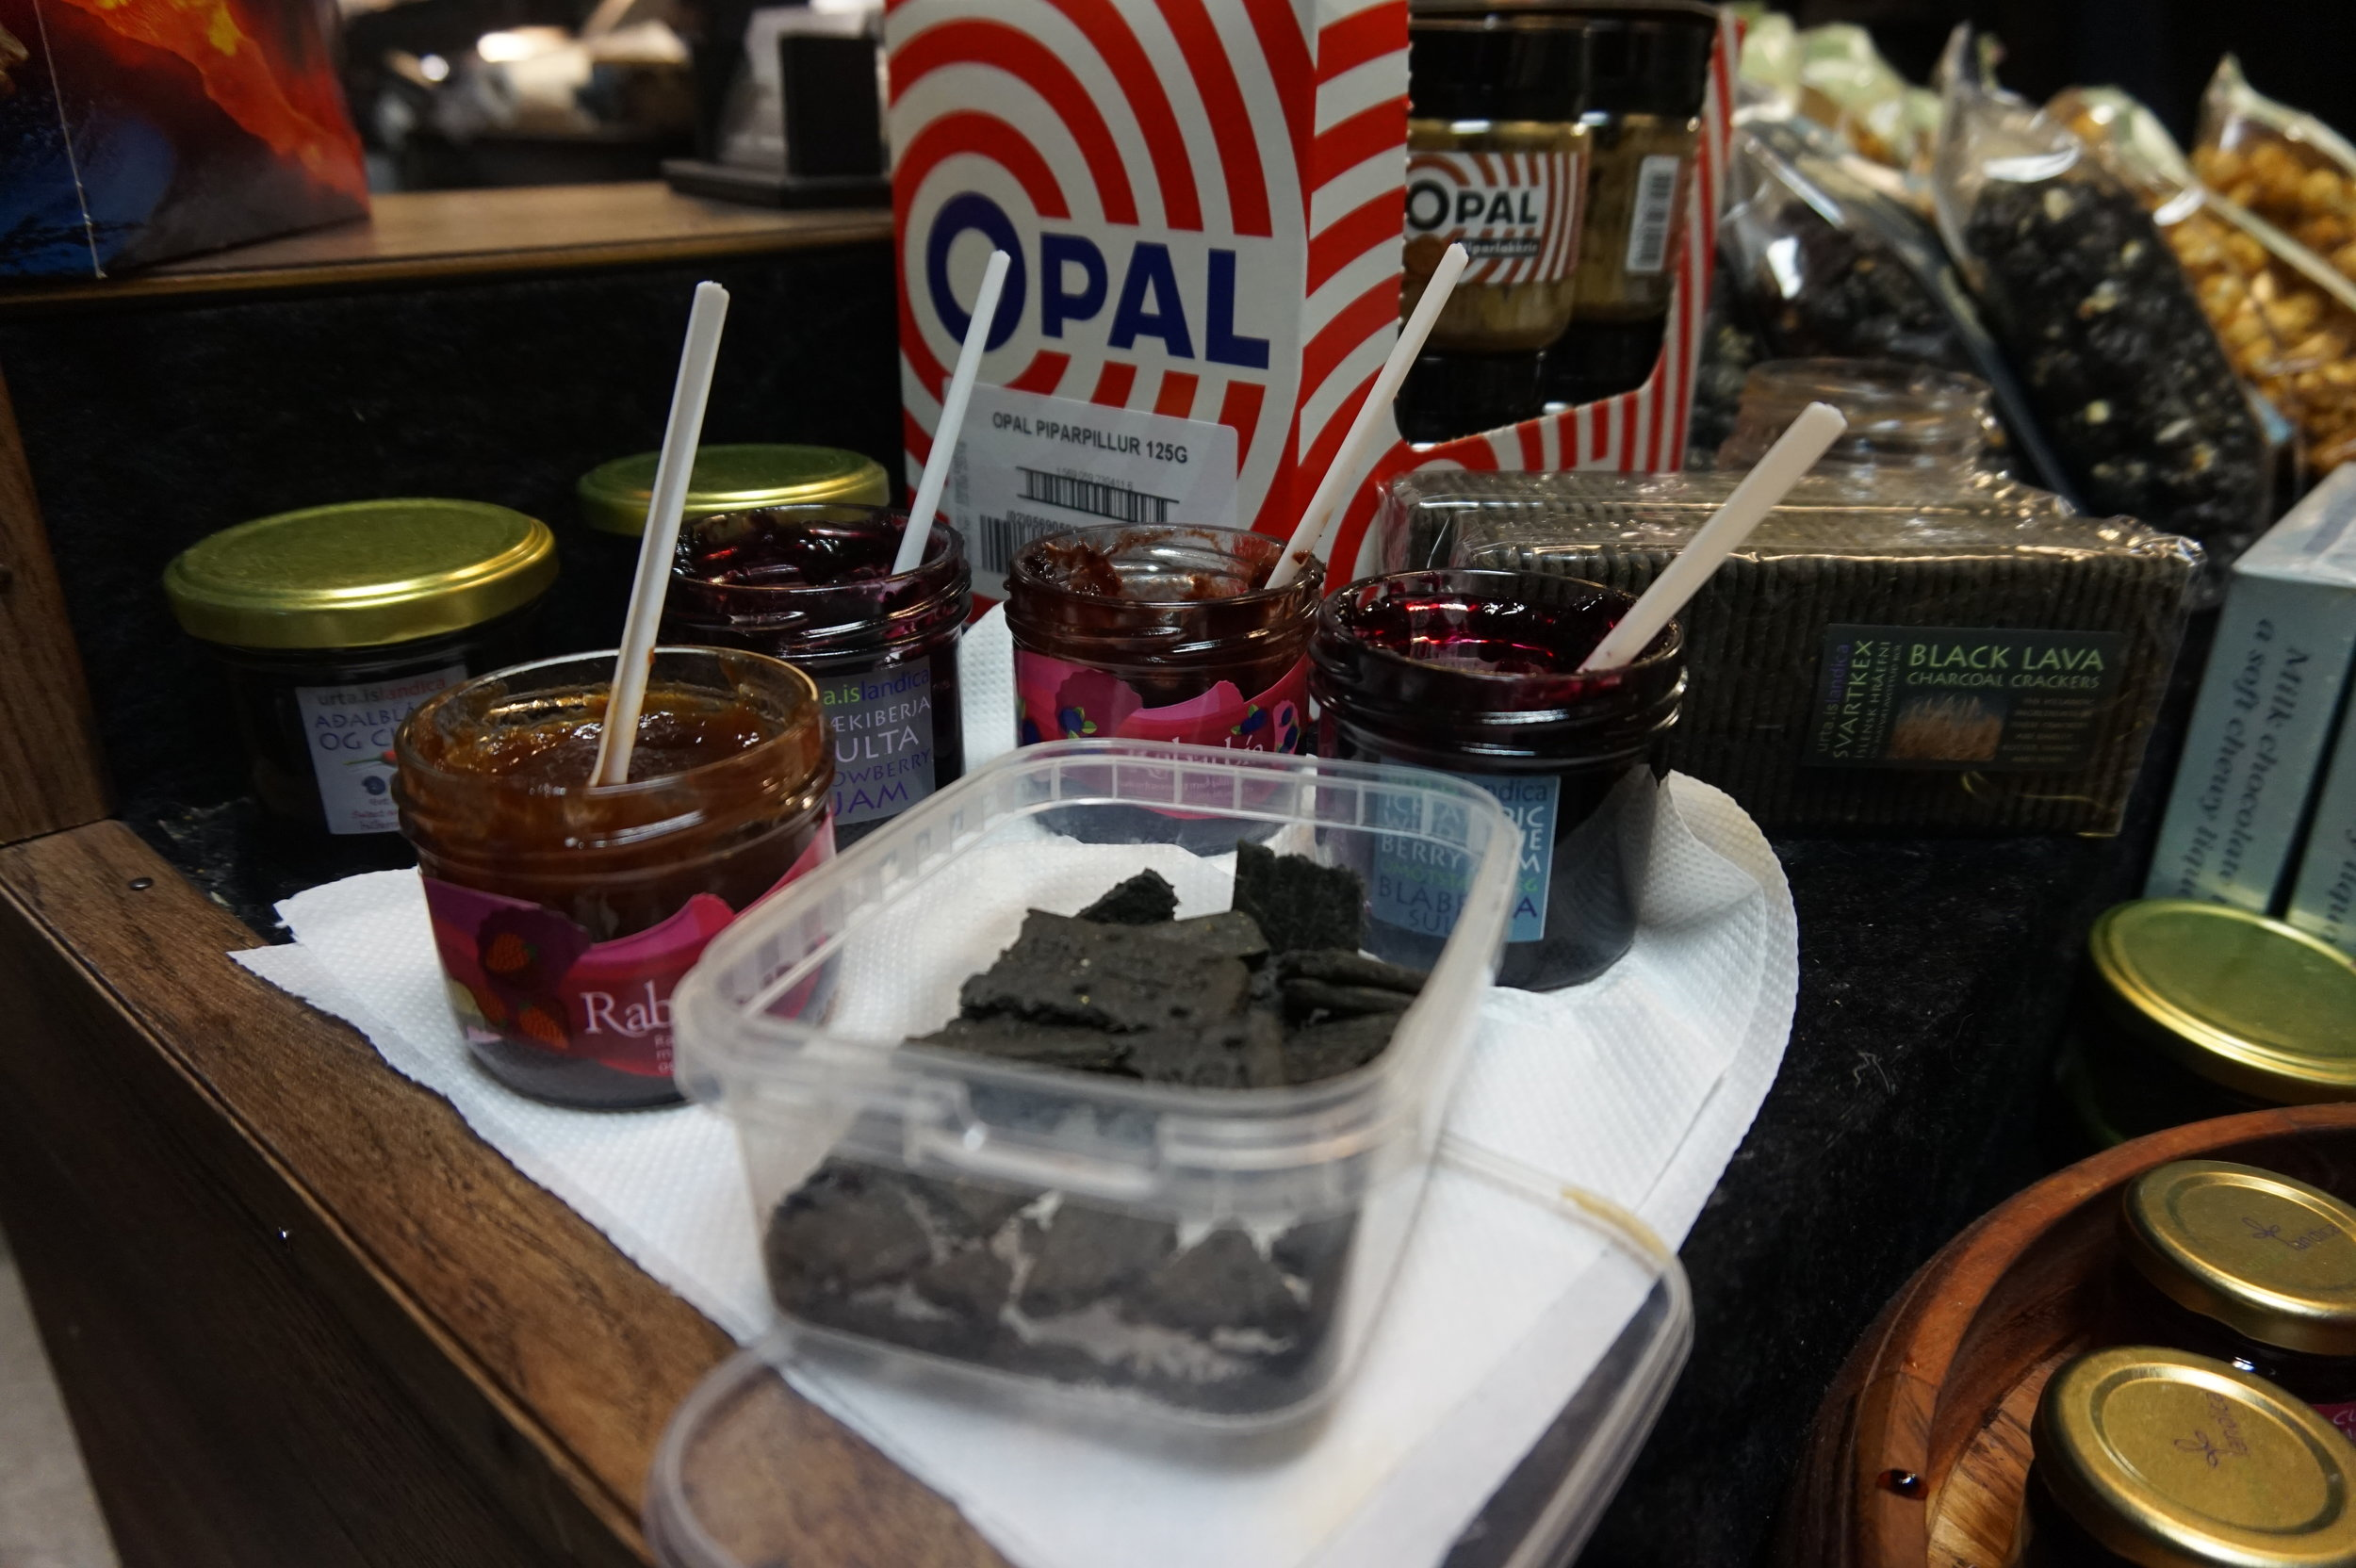 There were some interesting delights at Kolaportid, such as black lava charcoal crackers with salted fruit jam.